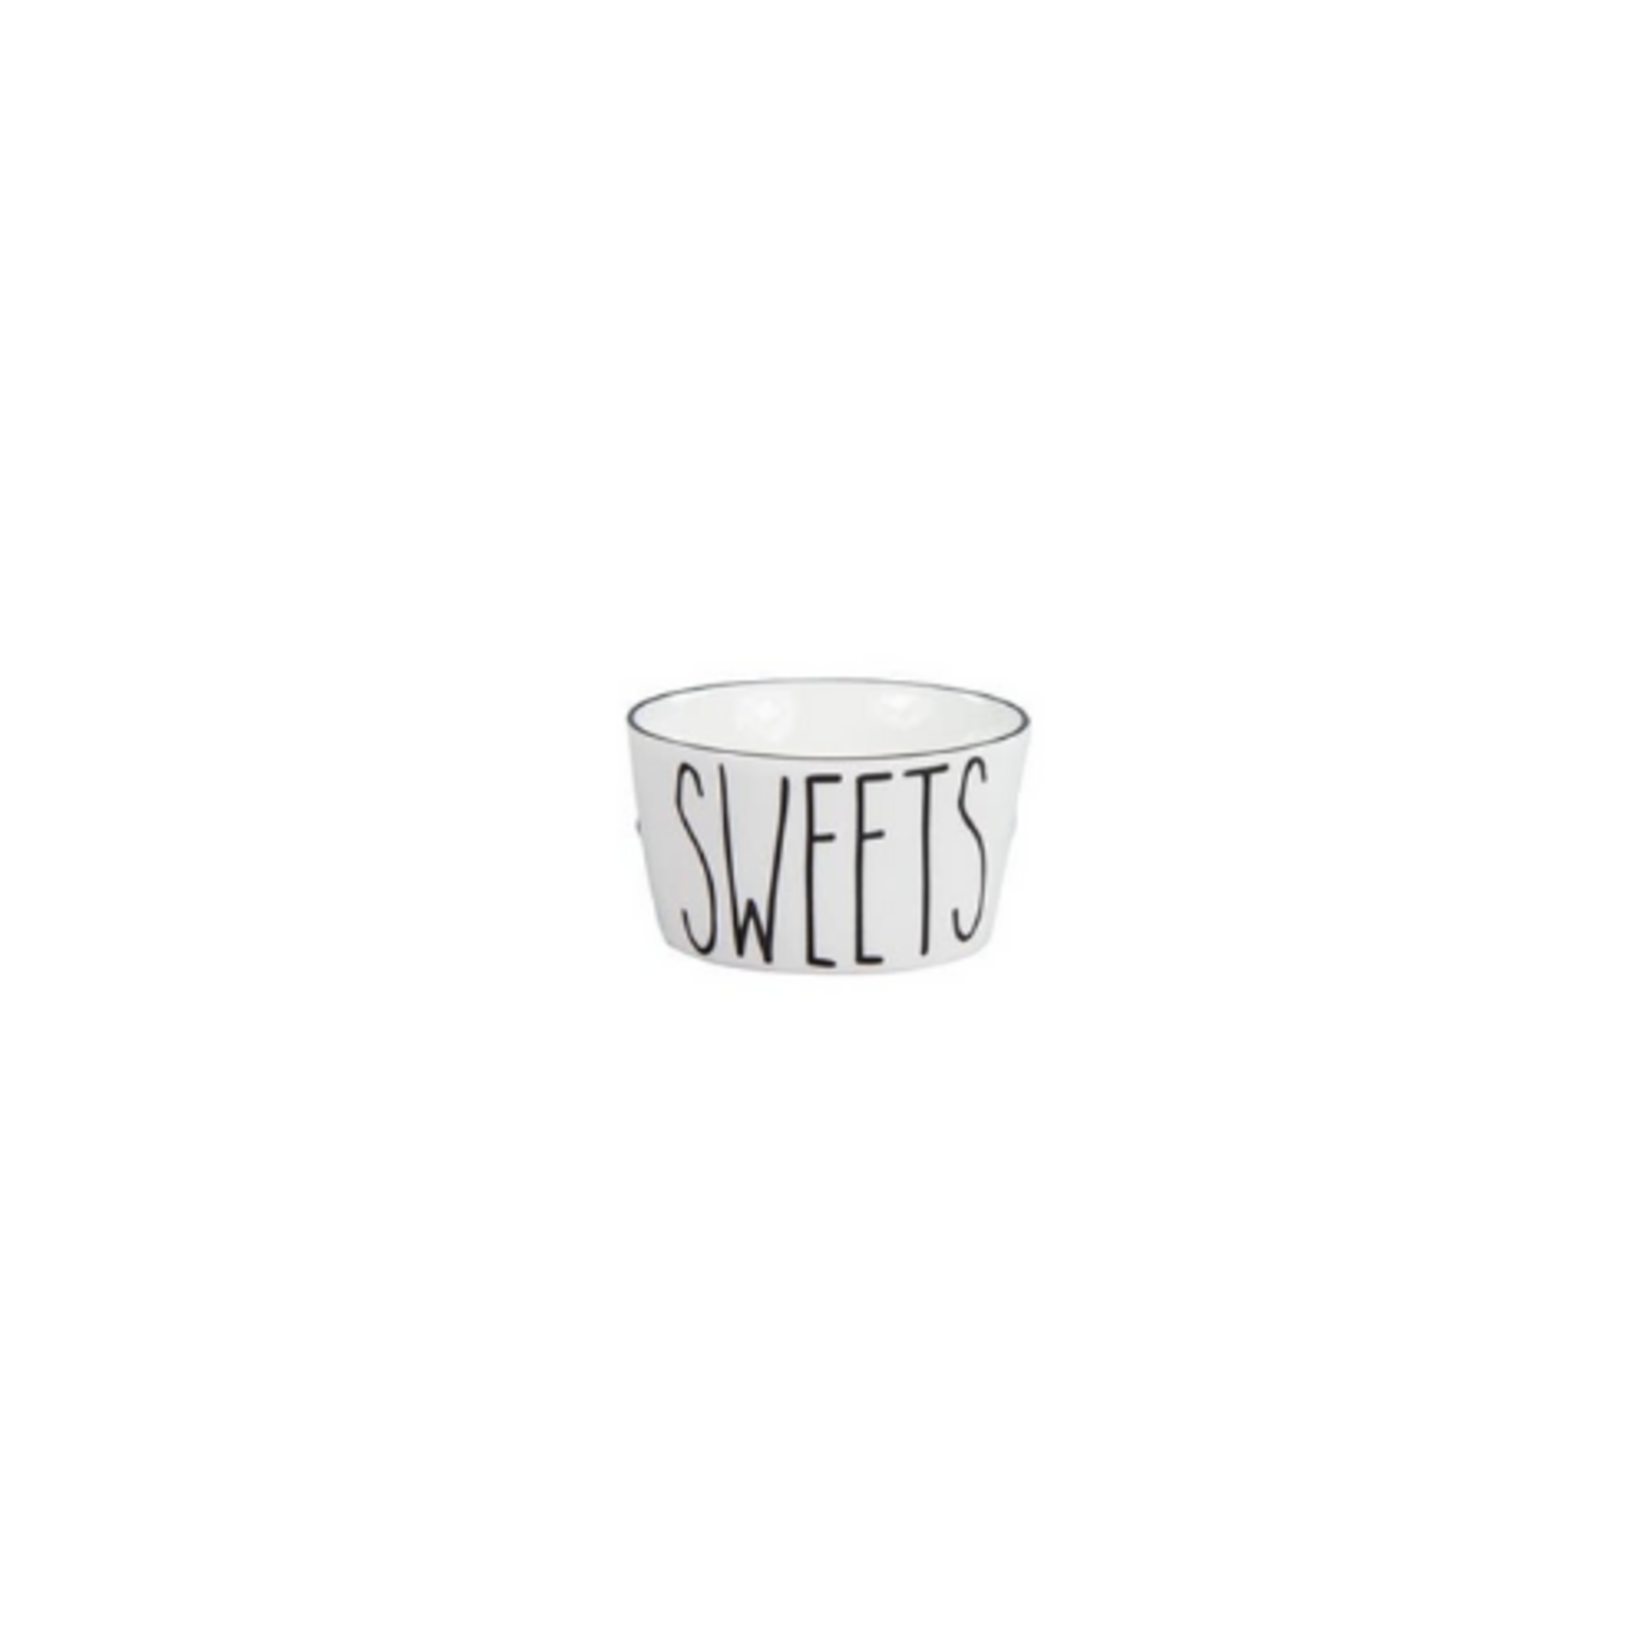 Bastion Collections Bowl XS White Sweets in Black